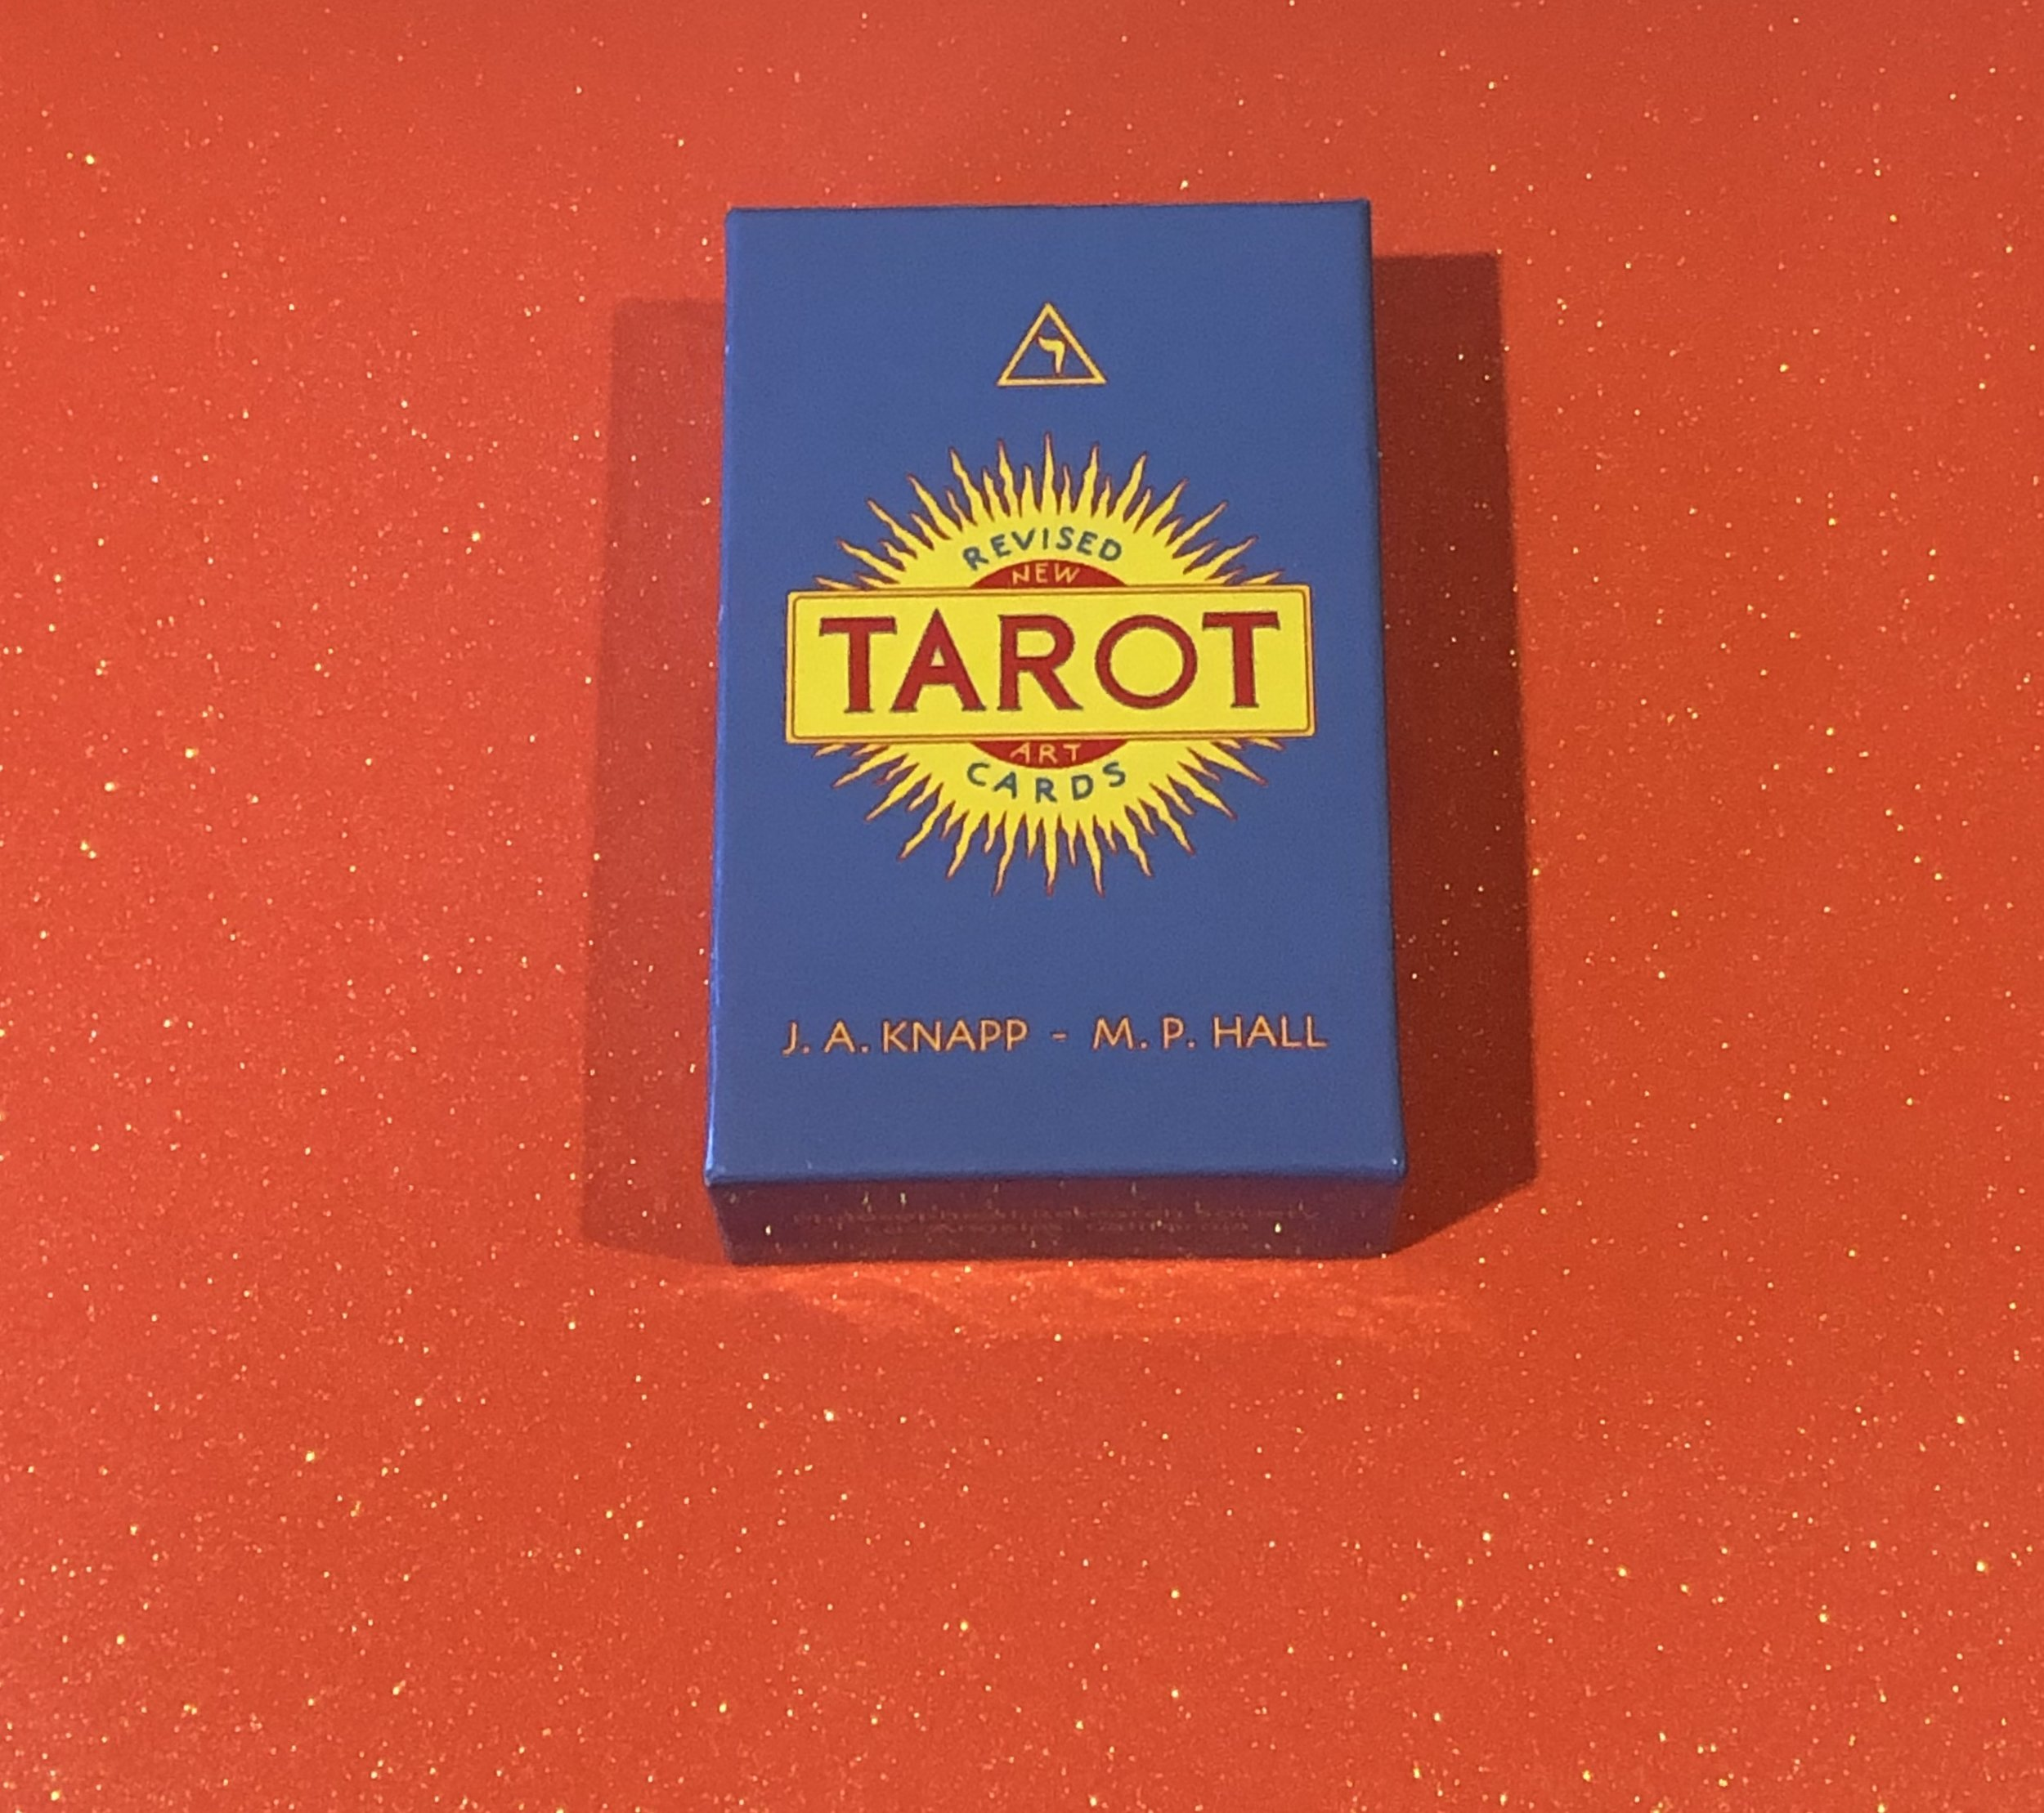 New Art Tarot by J.A. Knapp and Manly P. Hall